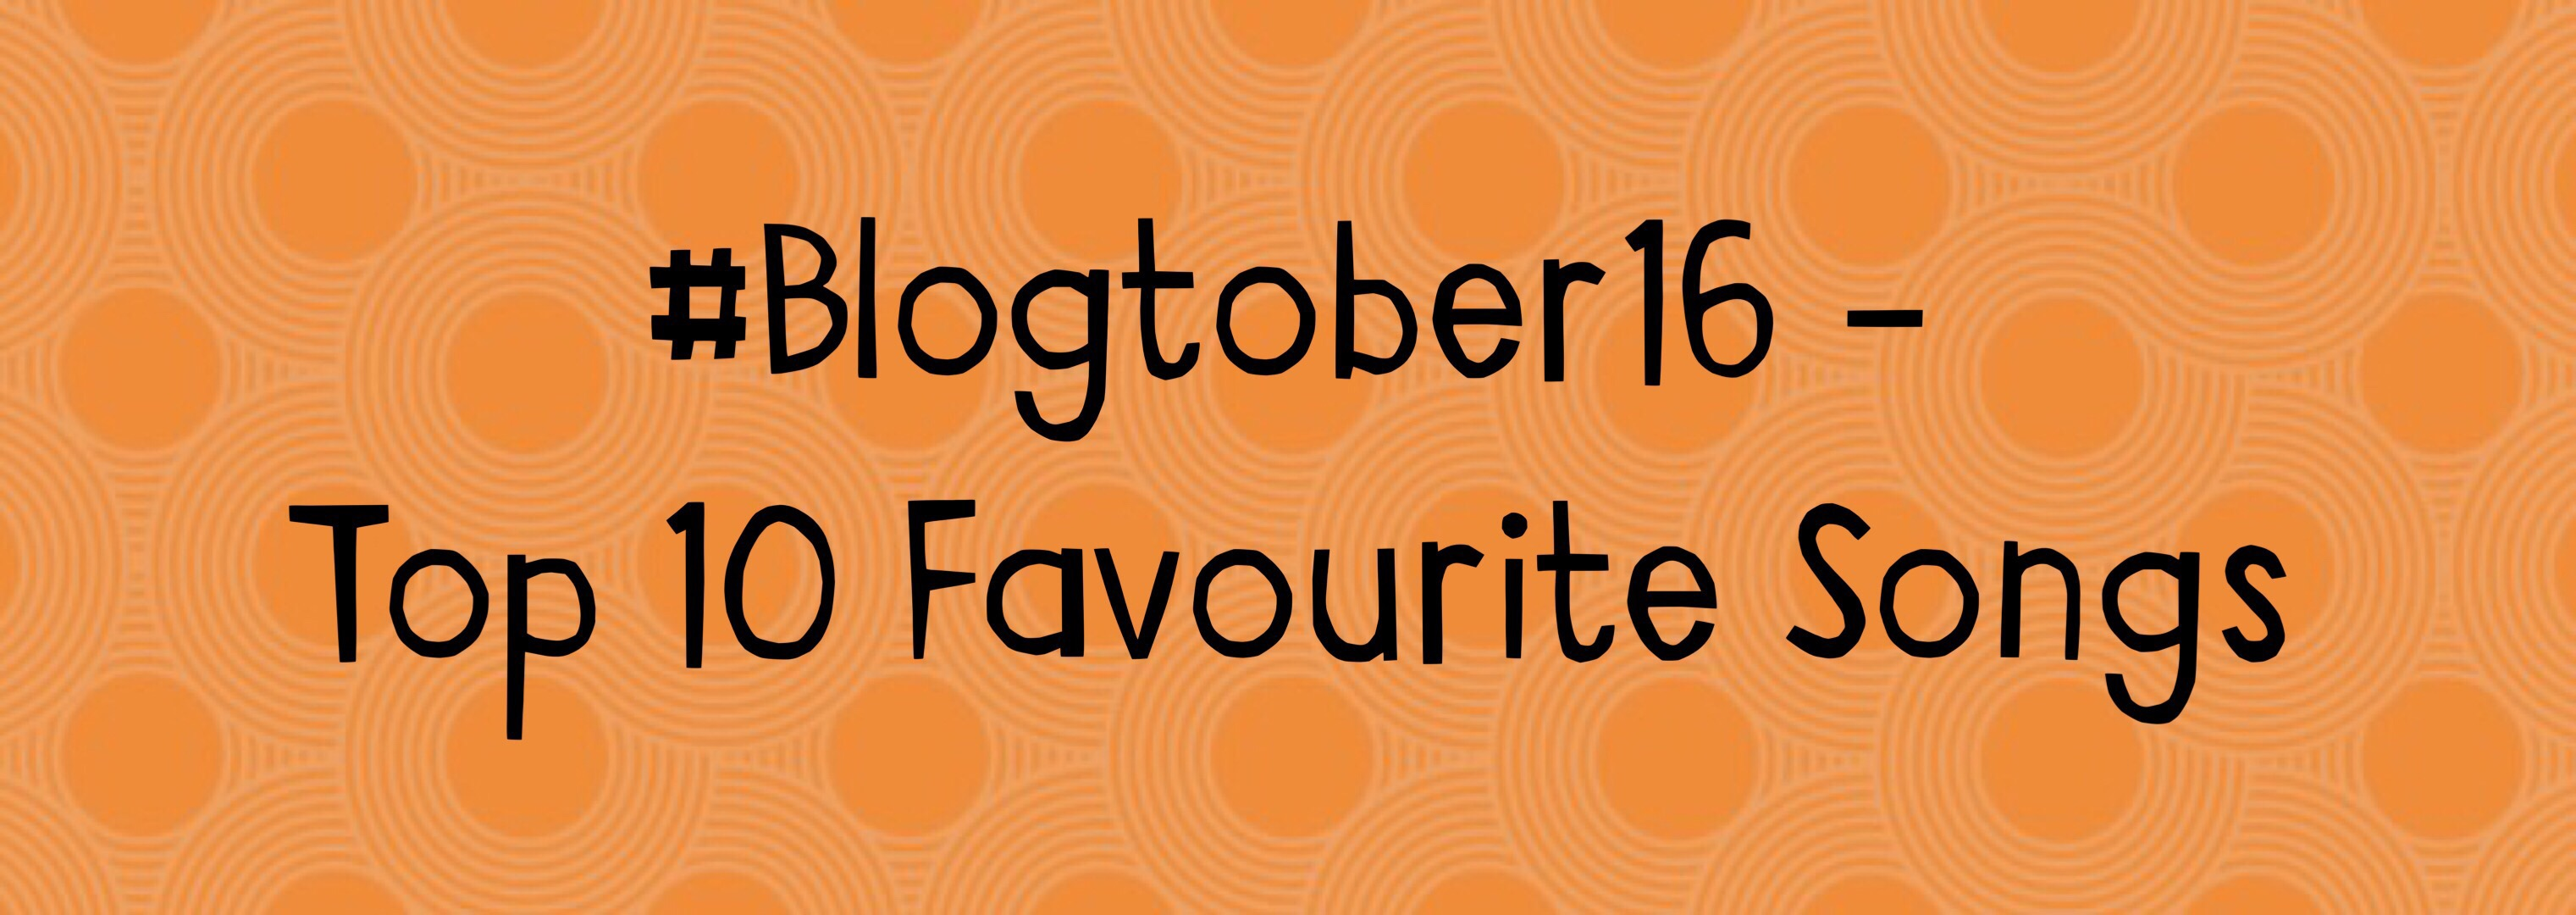 Top 10 Favourite Songs – #Blogtober16 Day 26